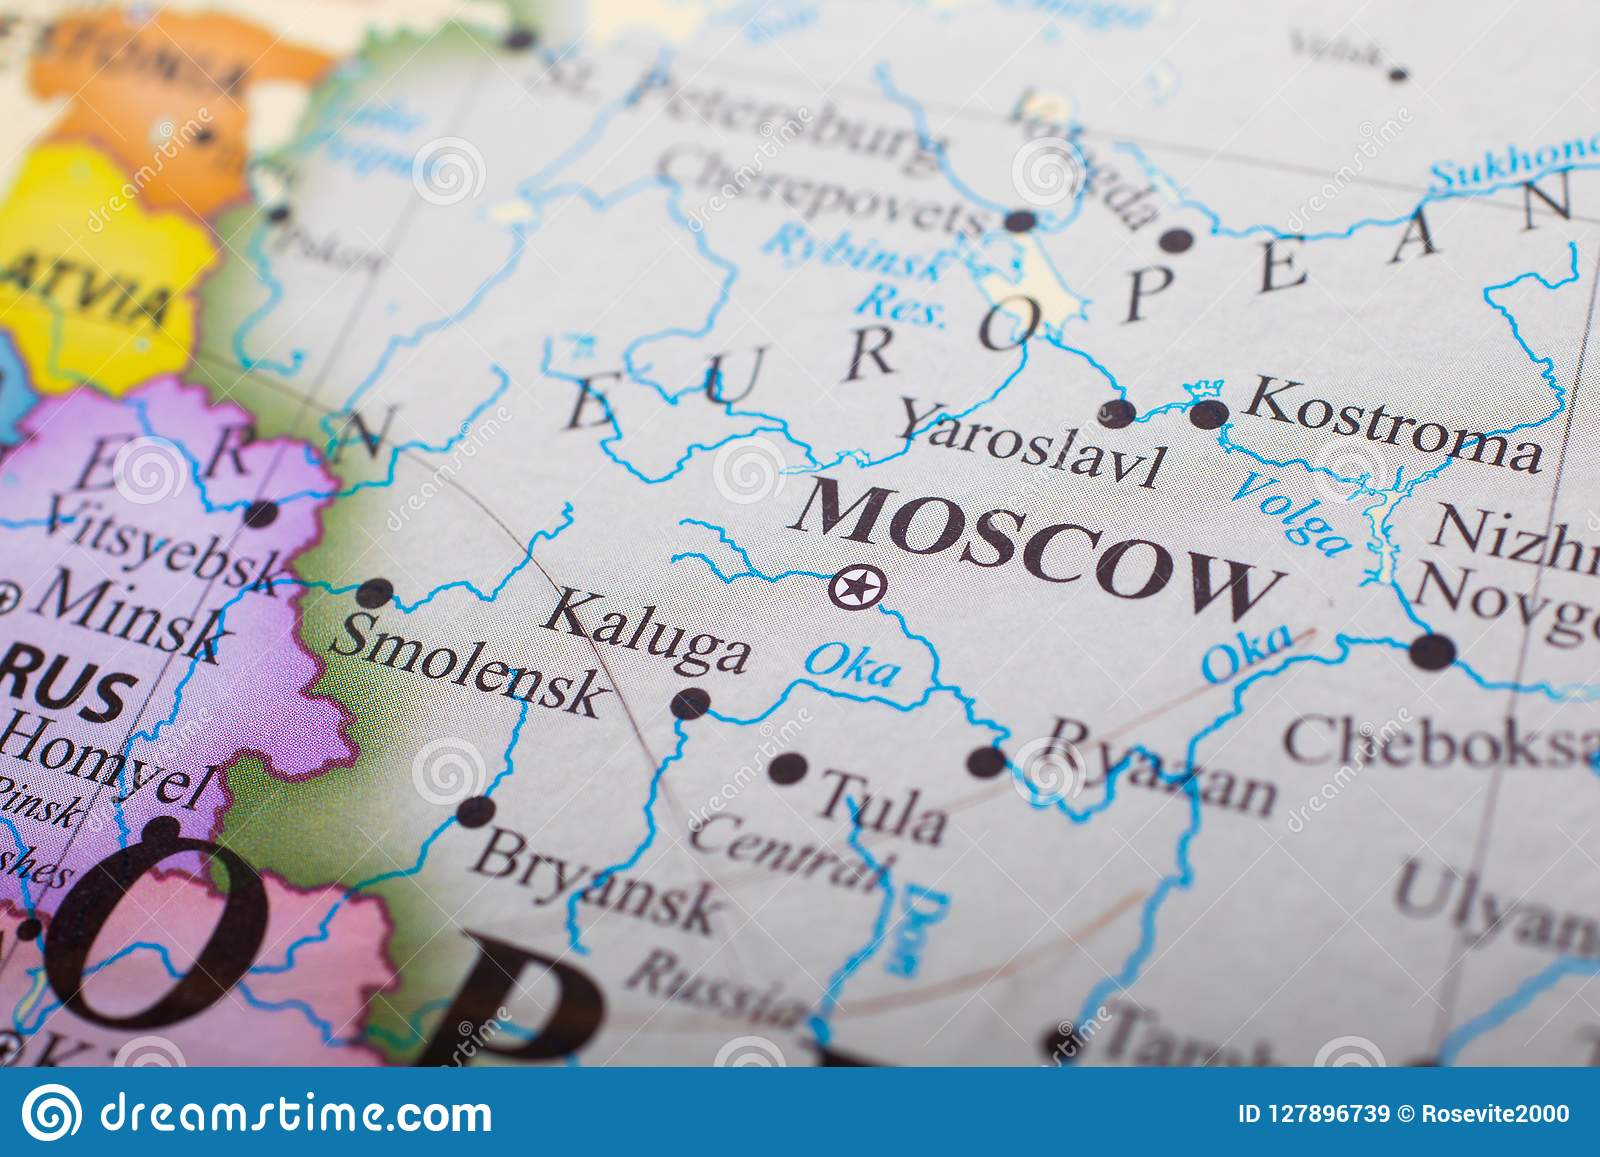 Map of Moscow Russia stock image. Image of outside, colorful ...